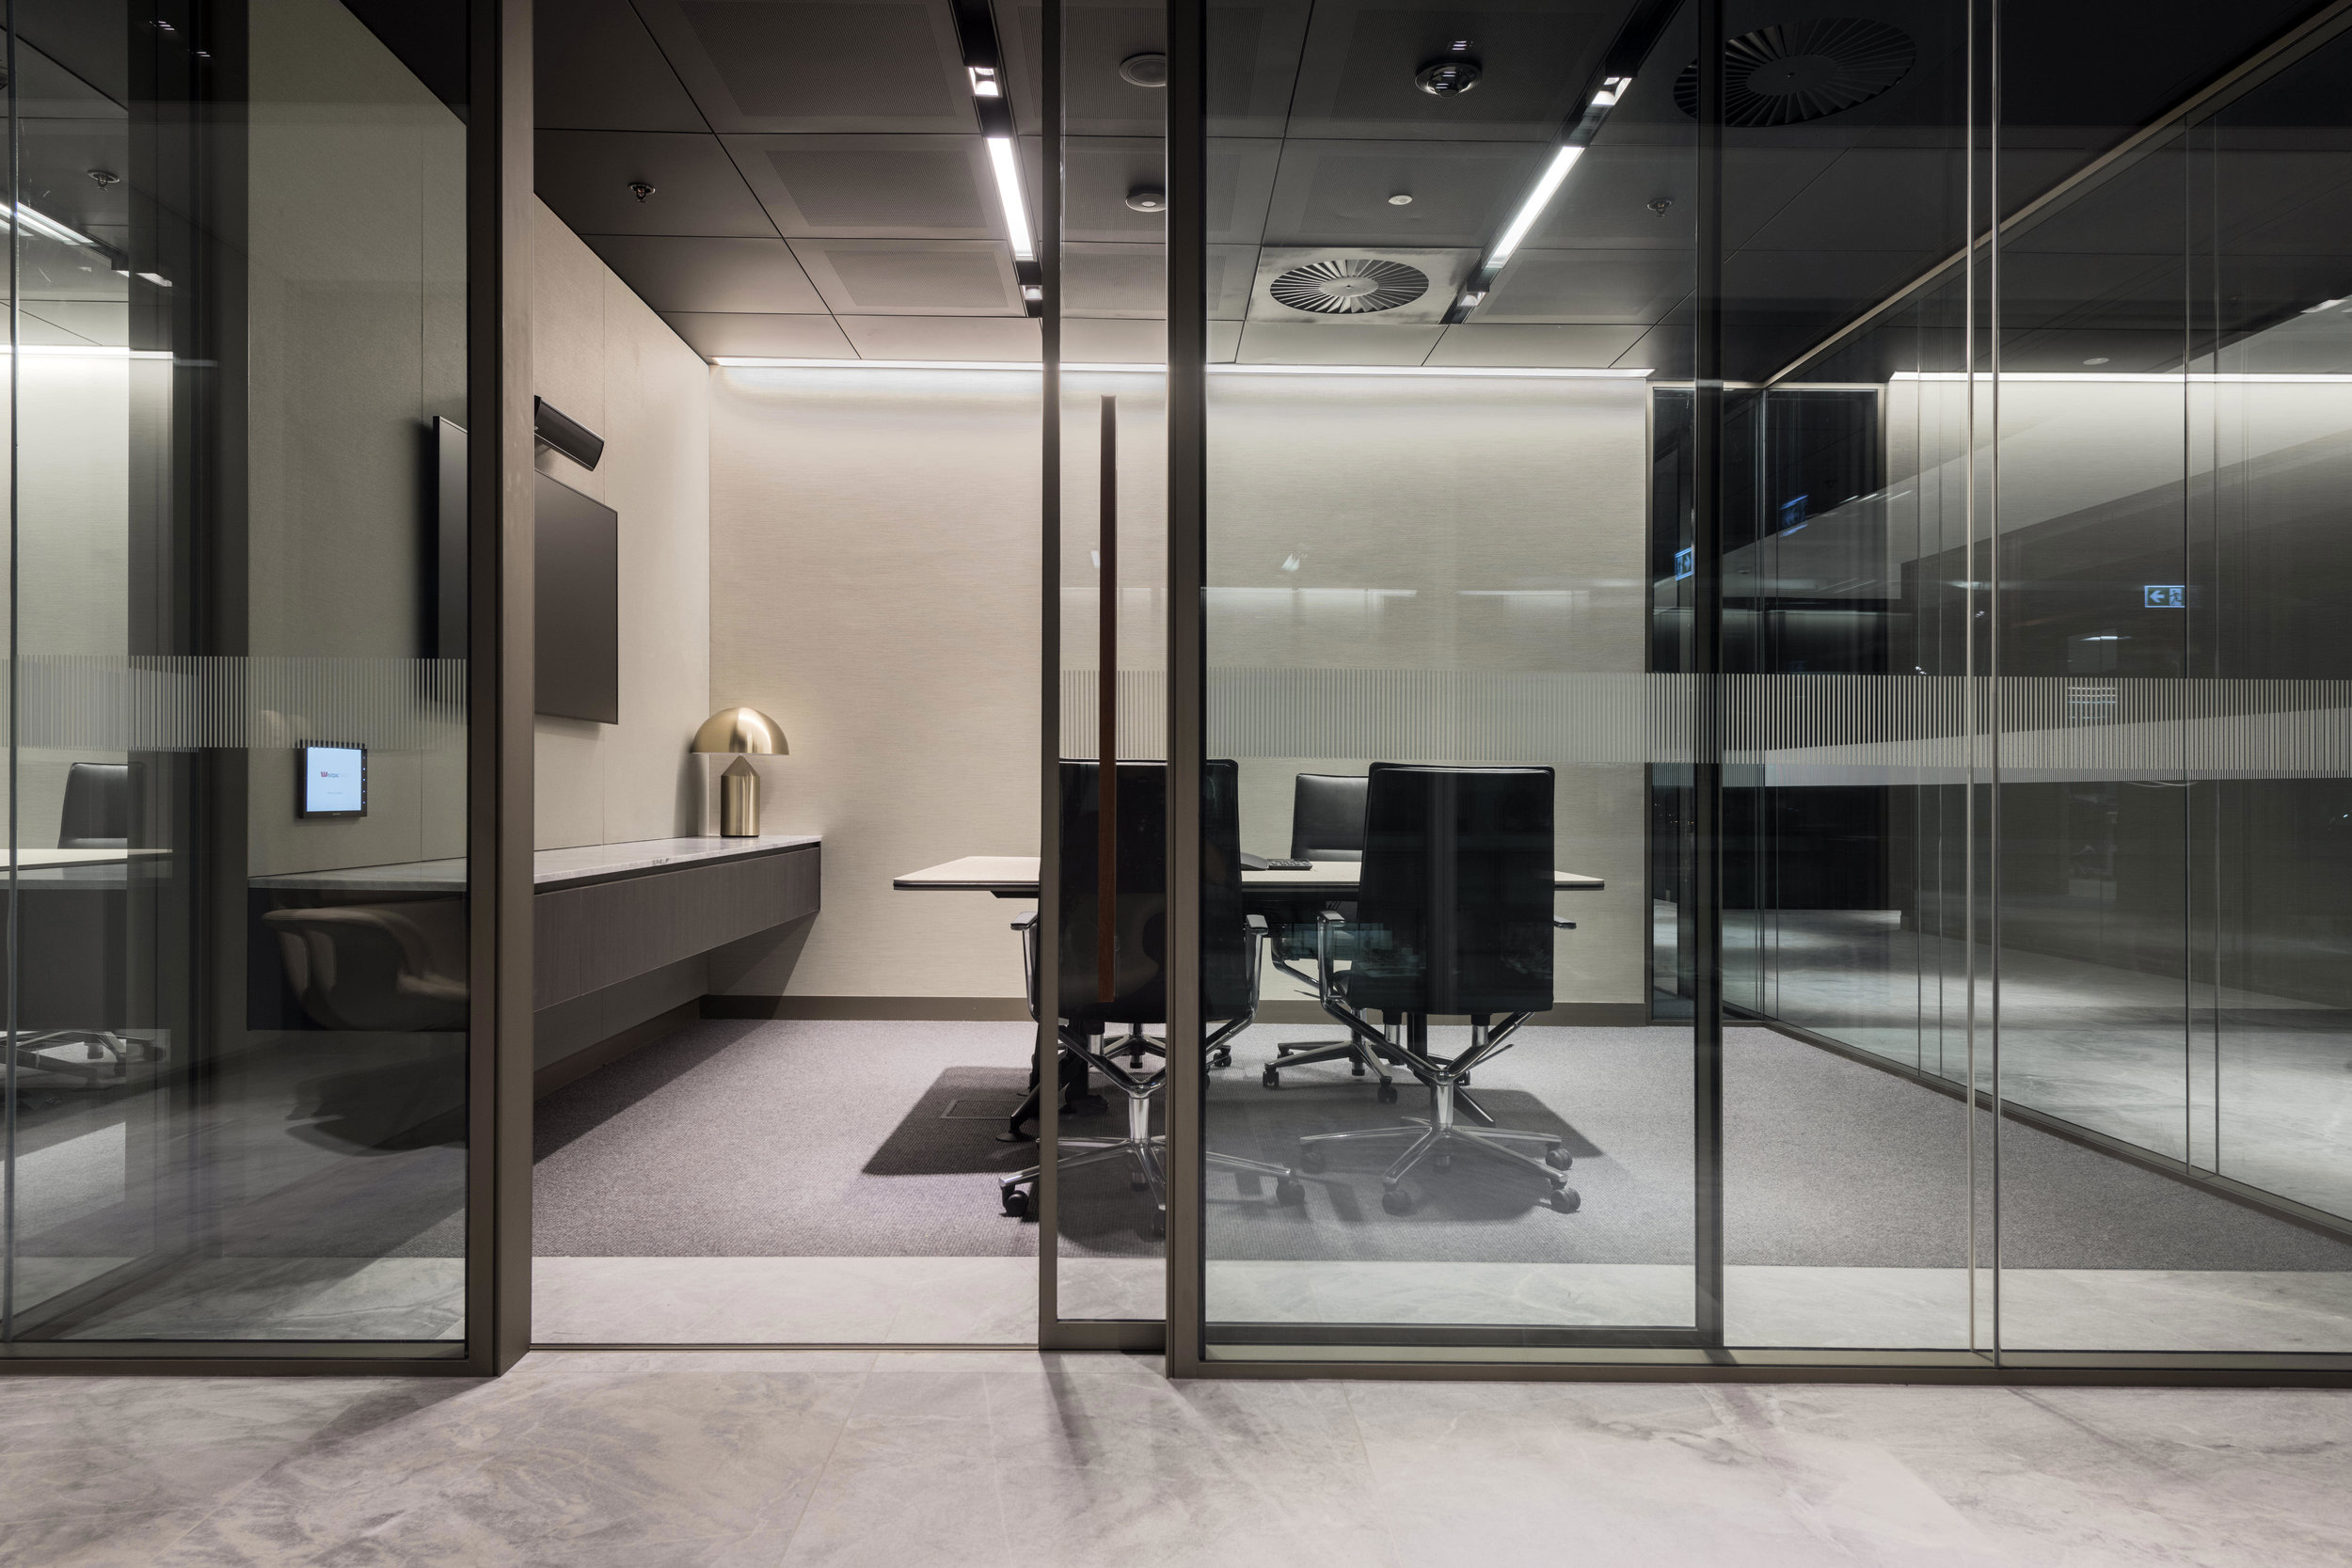 jeb_group-partitions-x-series-westpac-office-au-01.jpg